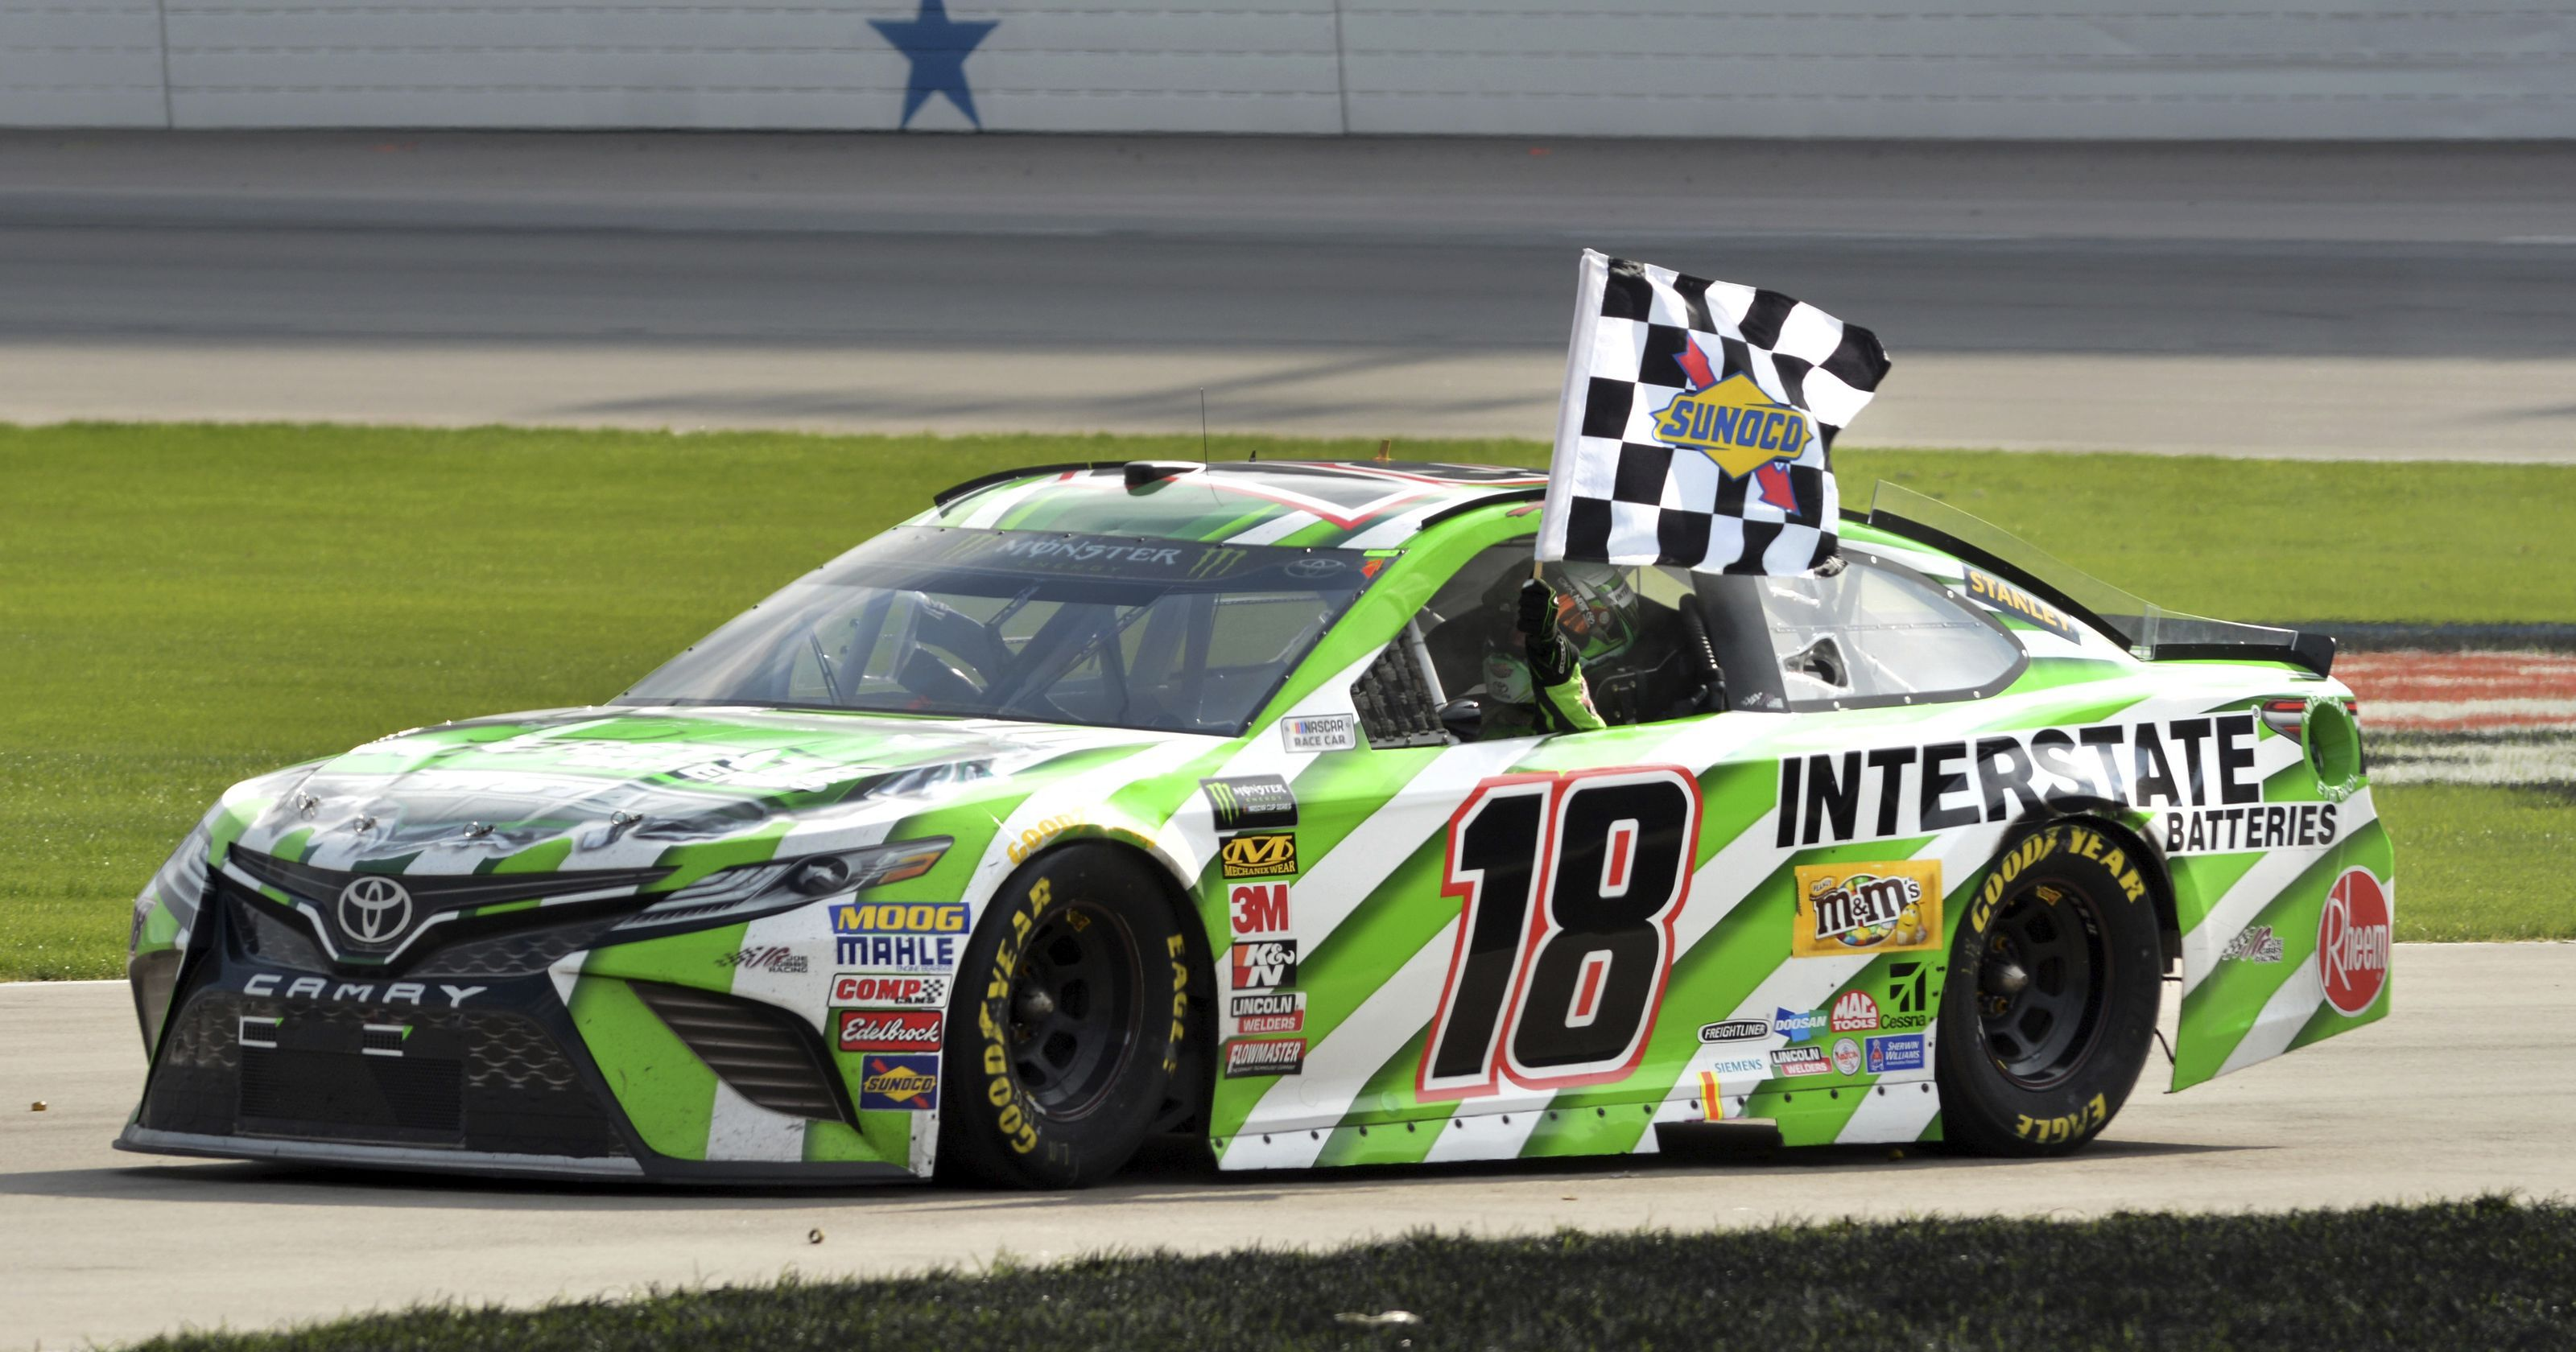 Kyle busch takes first checkered flag of 2018 at texas motor speedway - Pictures of kyle busch s car ...